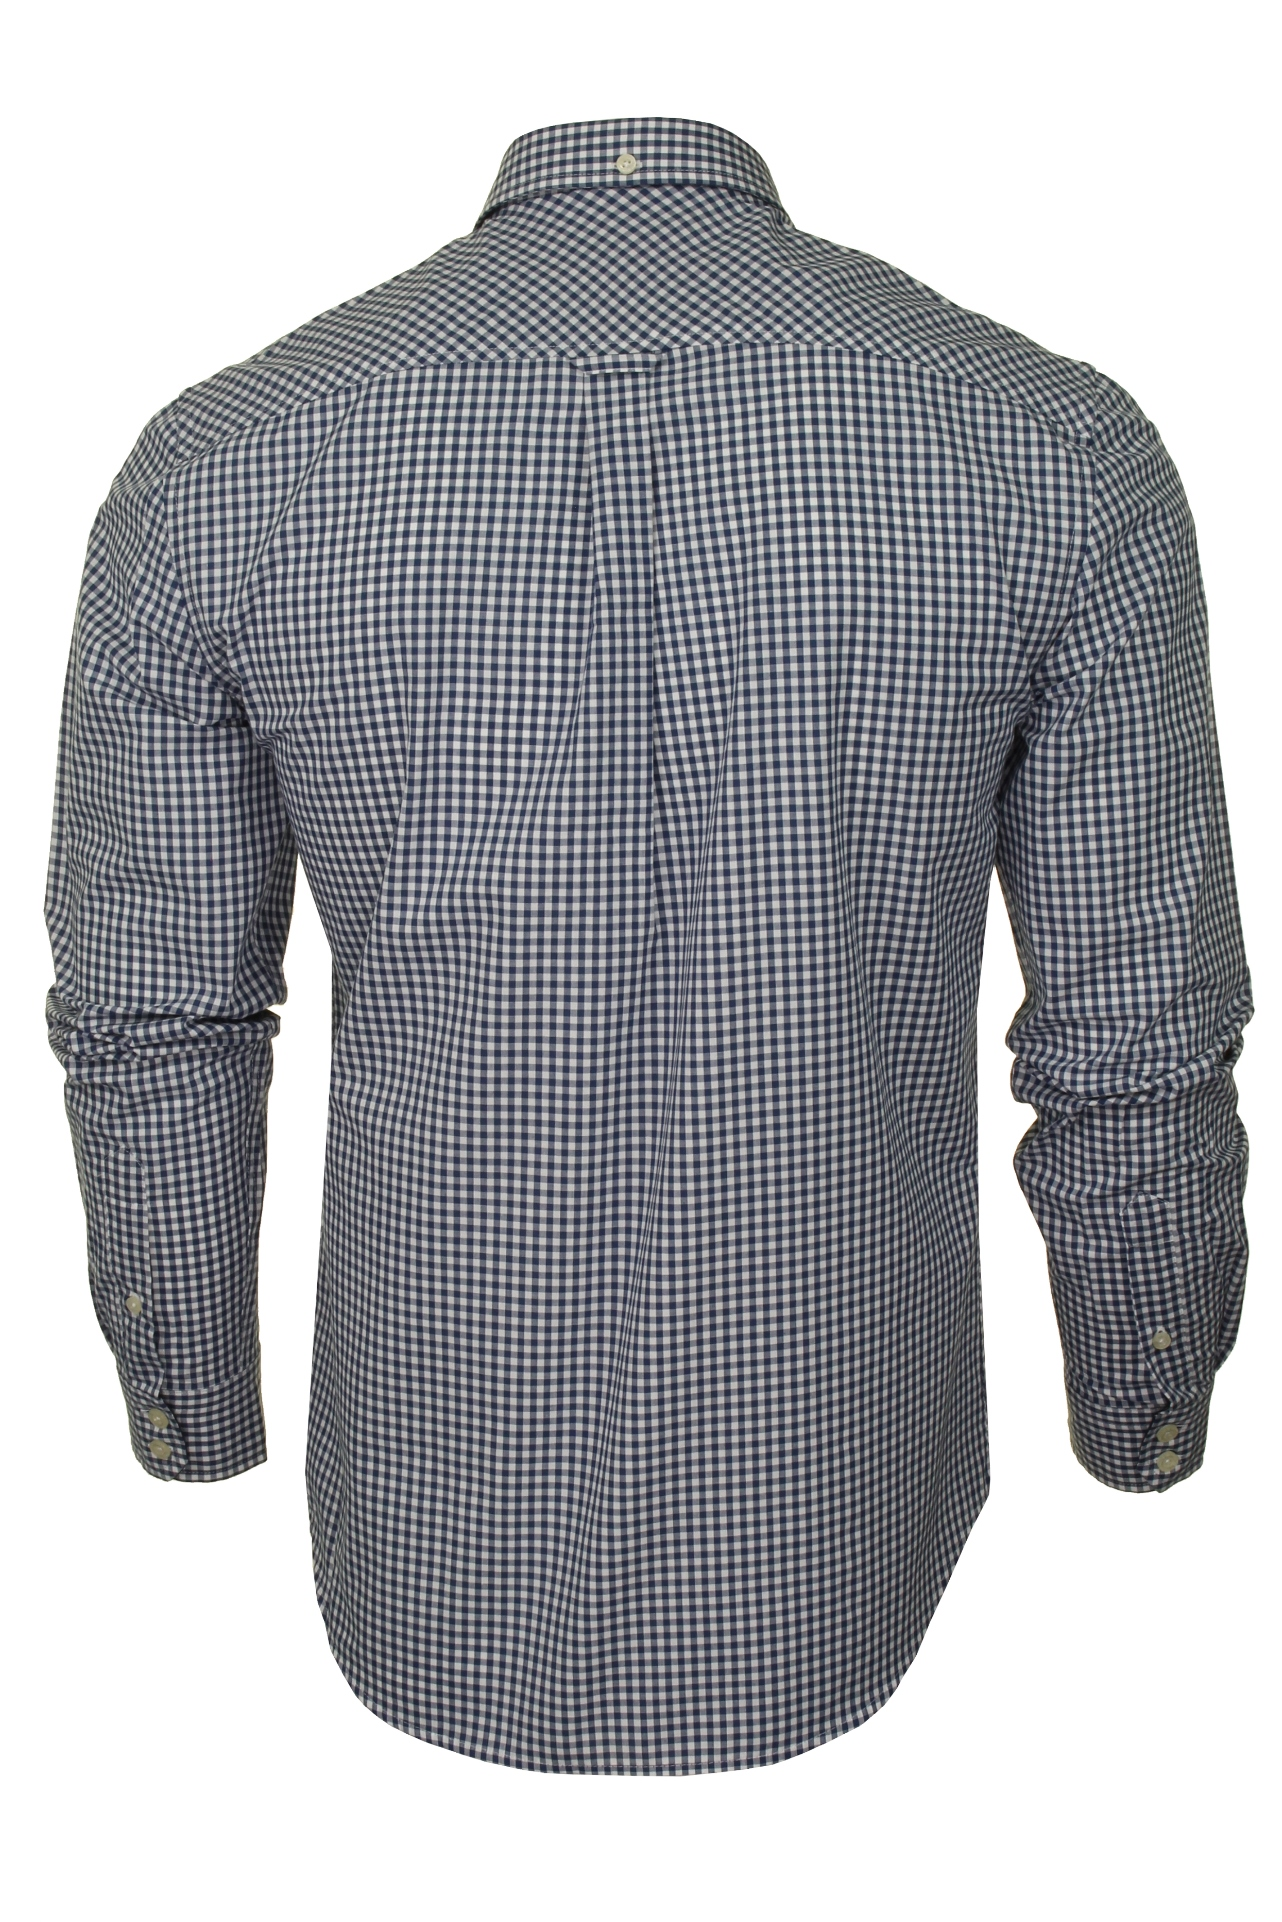 Ben-Sherman-Mens-Long-Sleeved-Gingham-Check-Shirt thumbnail 5